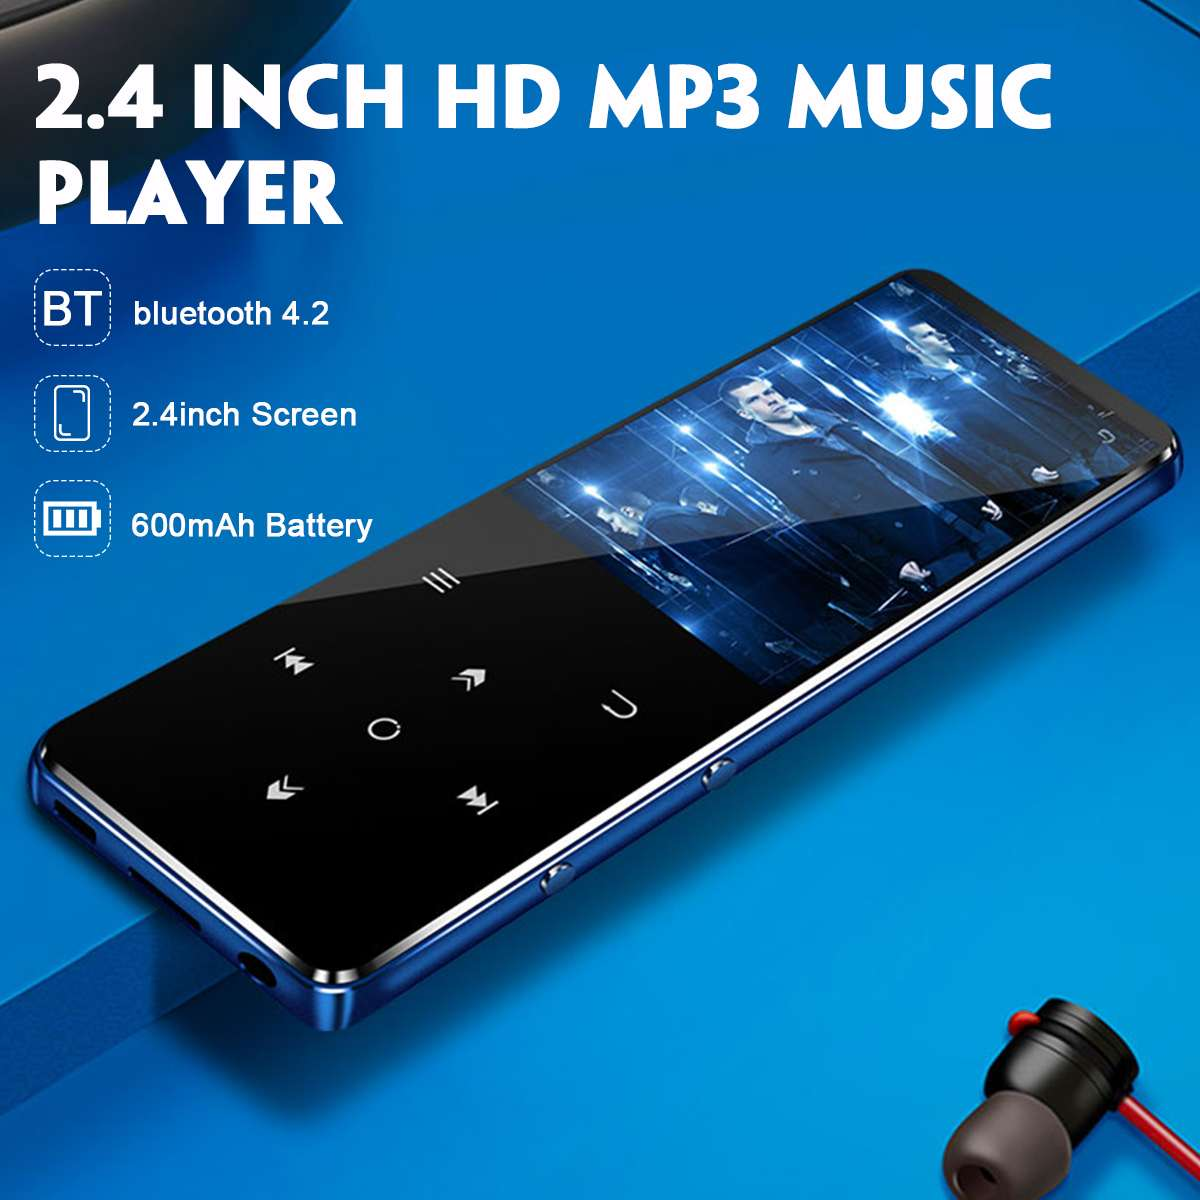 MP3 Player 2.4 Inch HD Touch Screen IPX4 Waterproof MP3 MP4 Music Bluetooth Player HiFi Portable 4/8/16GB Lecteur MP3